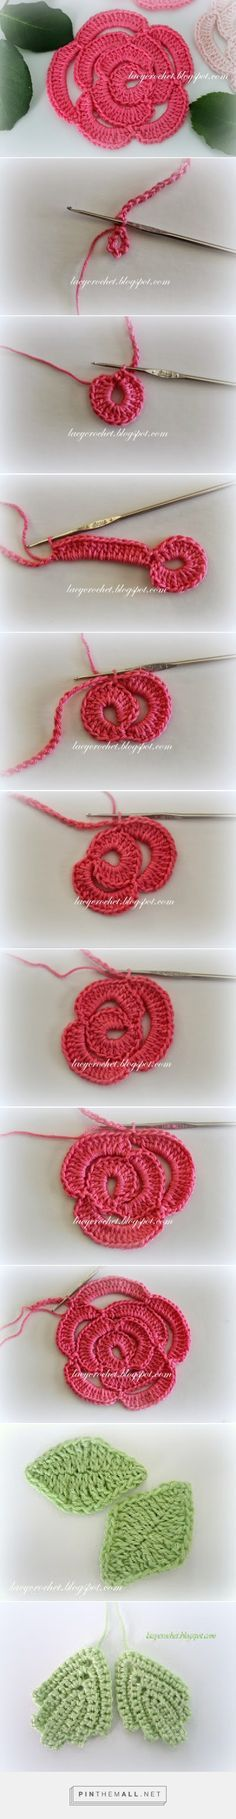 Lacy Crochet: Crochet Flowers - Rosa created via http://pinthemall.net